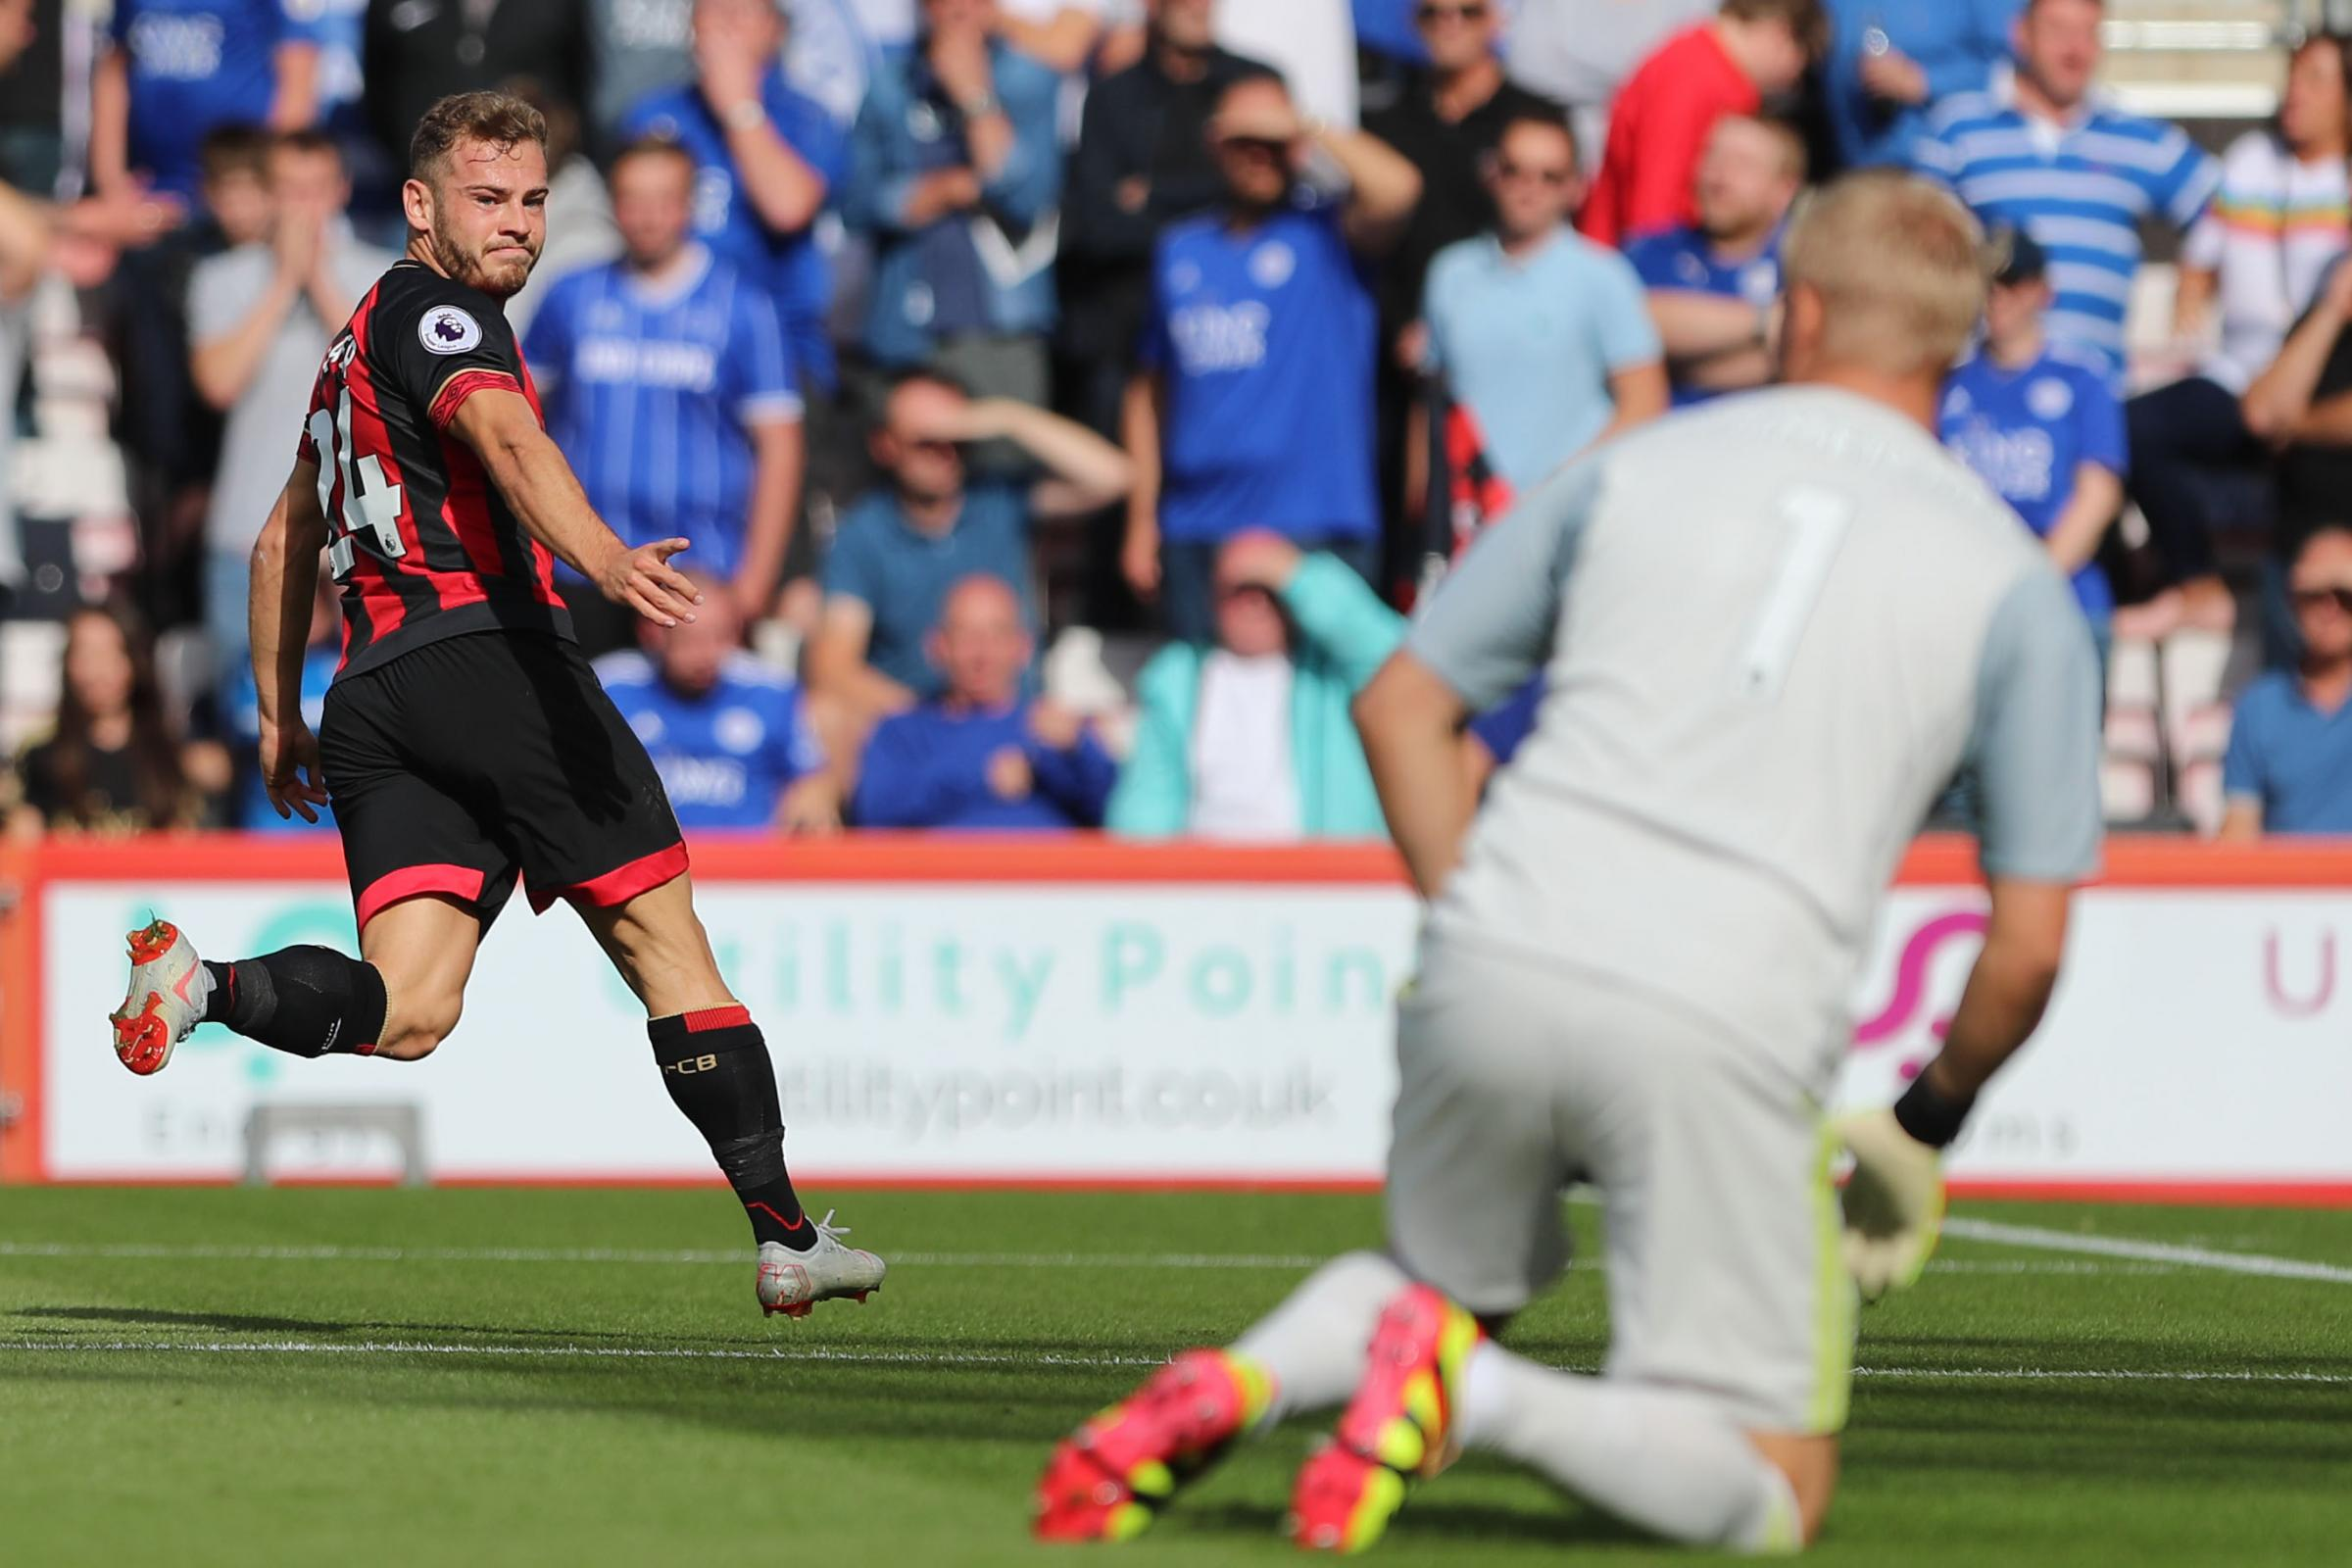 Creative Fraser is 'entering his prime' with Cherries, says Howe